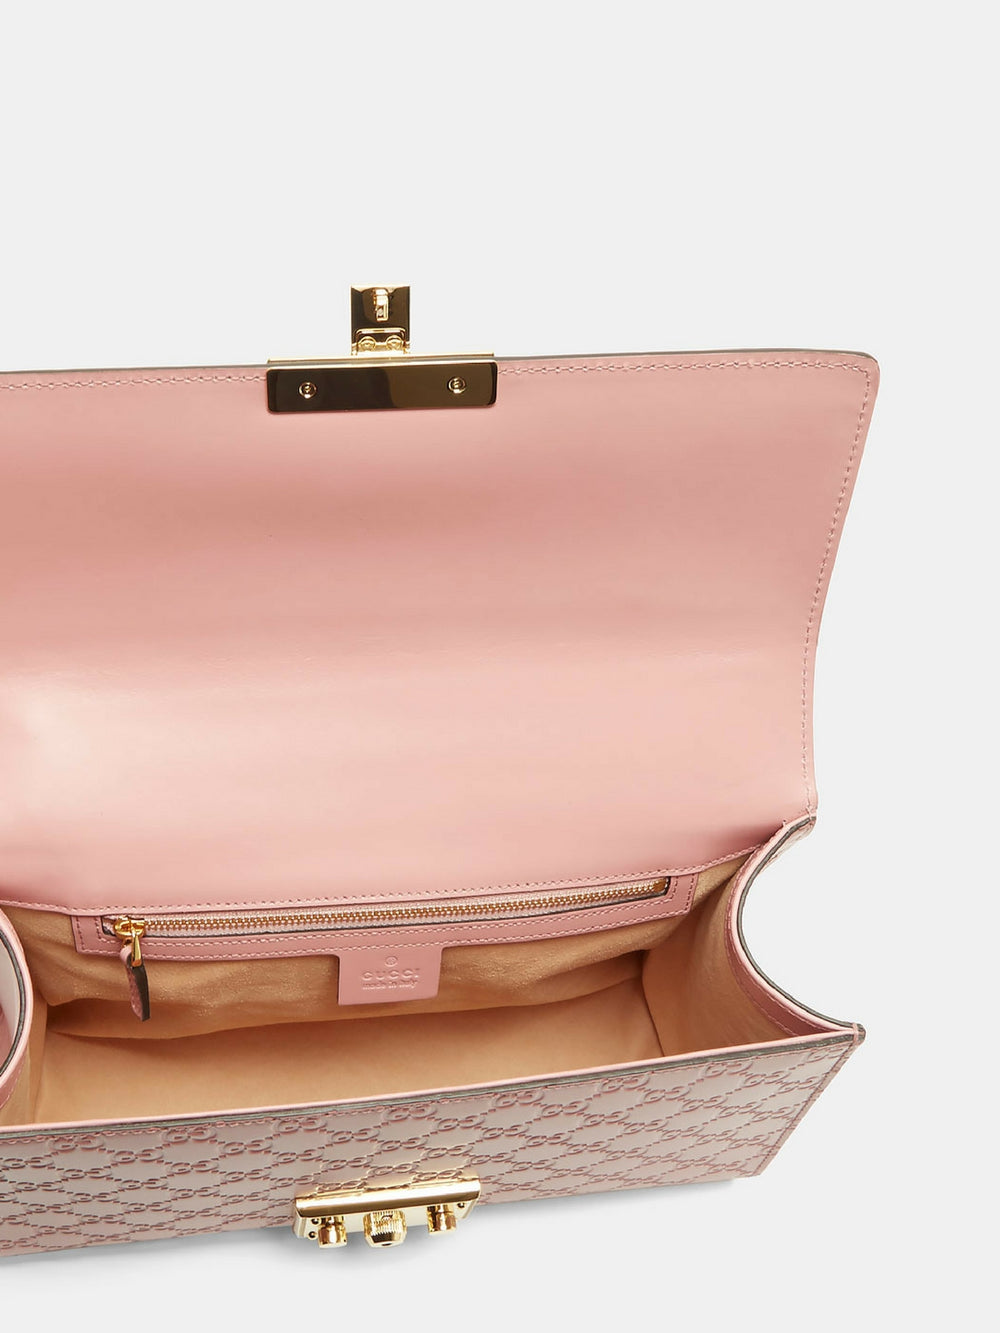 gucci-padlock-signature-monogram-shoulder-bag-candy-pink